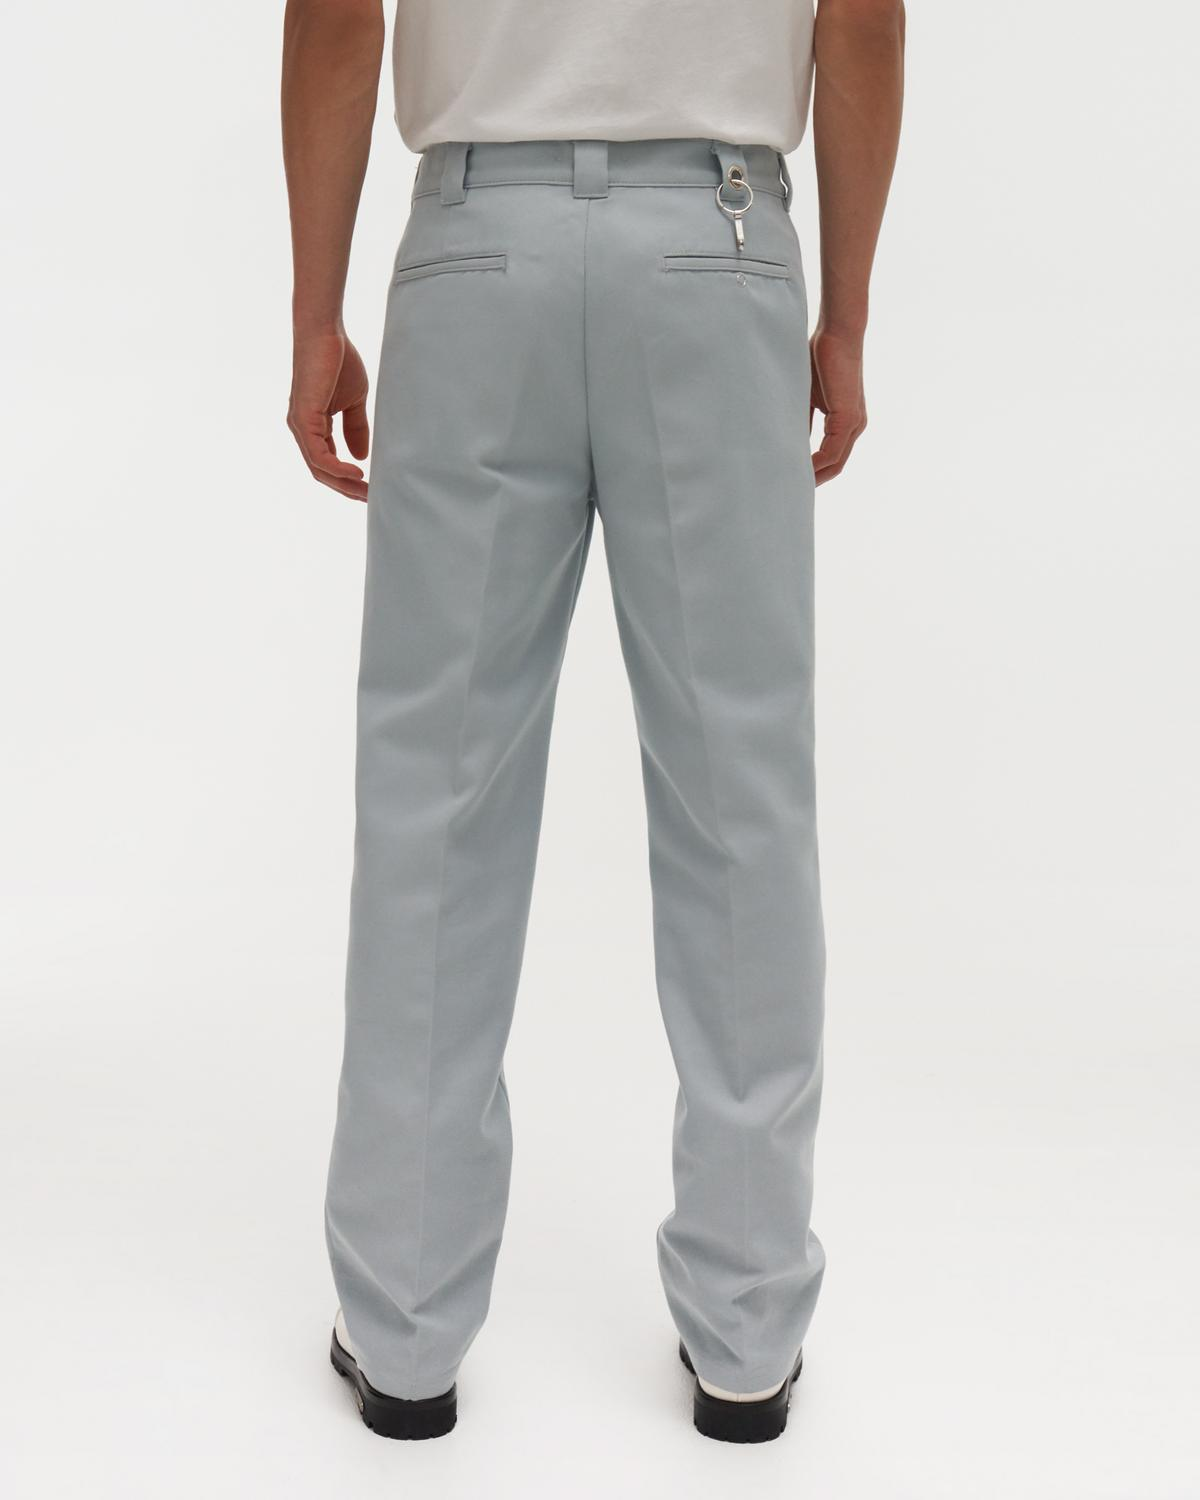 Industry Uniform Pant